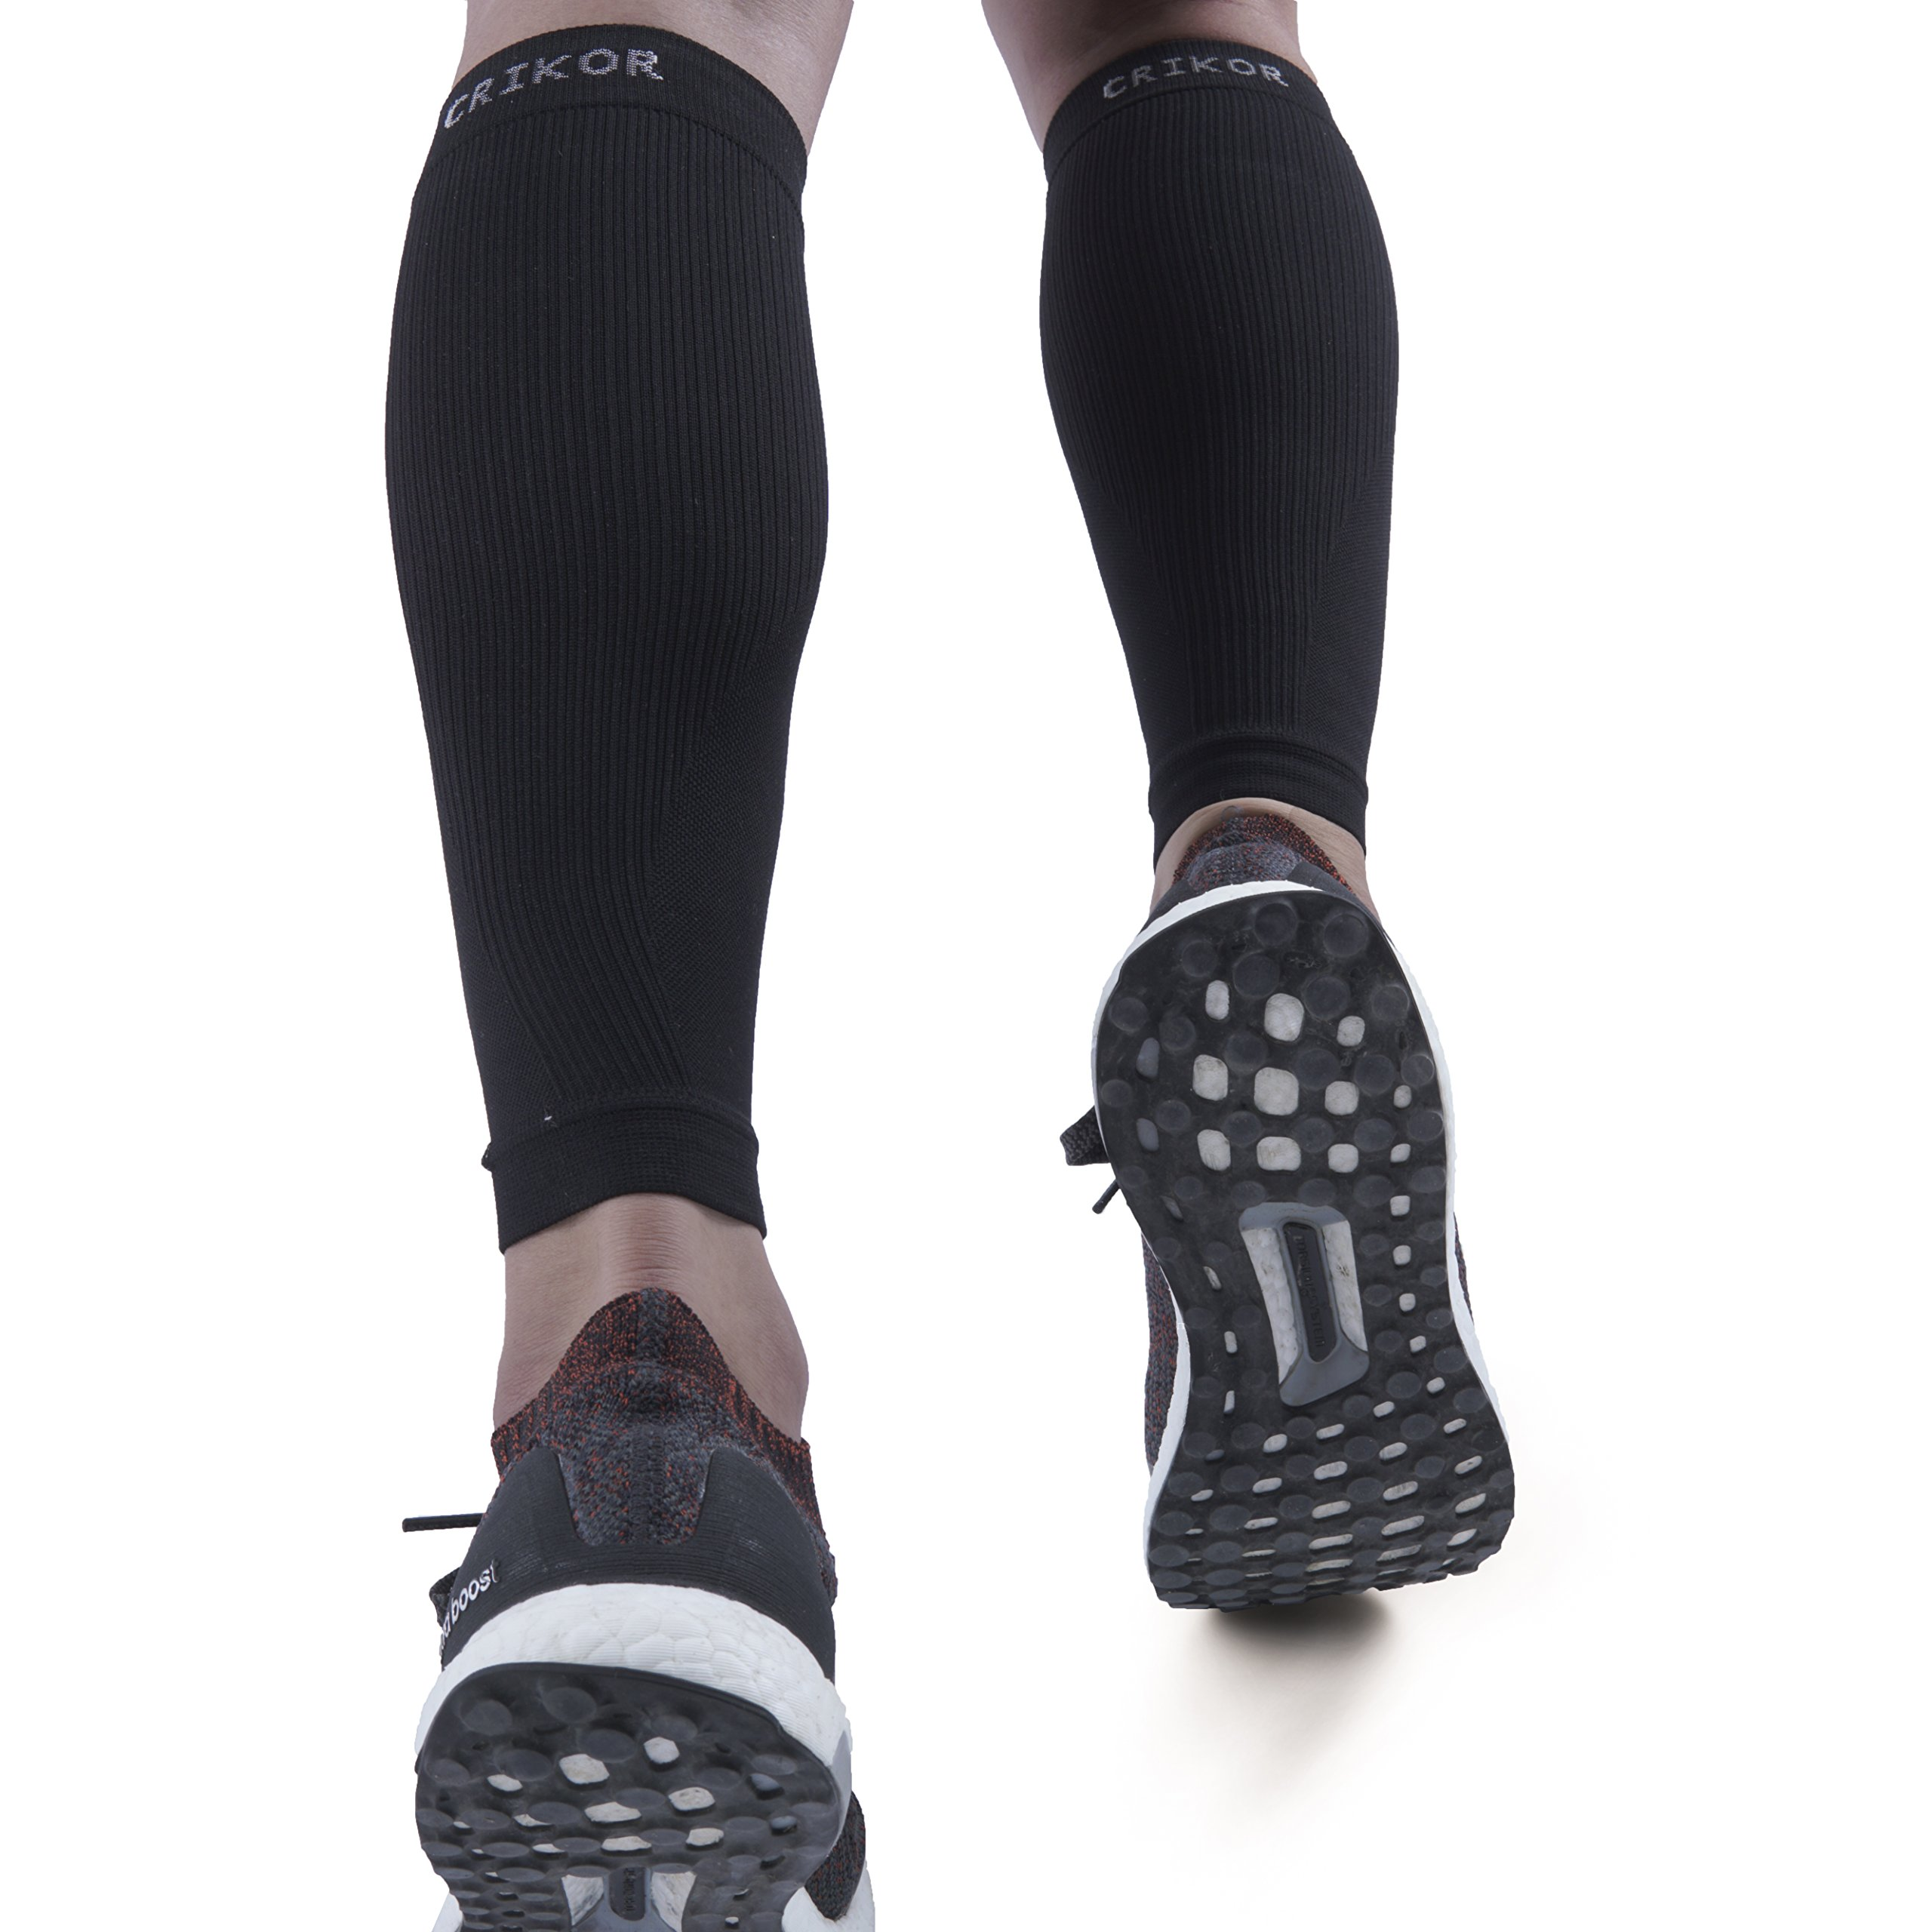 Crikor Calf Compression Sleeve (1-Pair) Improves Circulation and Recovery for Shin Splint, Calf Pain, Swelling, Leg Cramps - Man Women Runners Guards Sleeves for Running, Cycling, Maternity, Travel by Crikor Sports (Image #1)